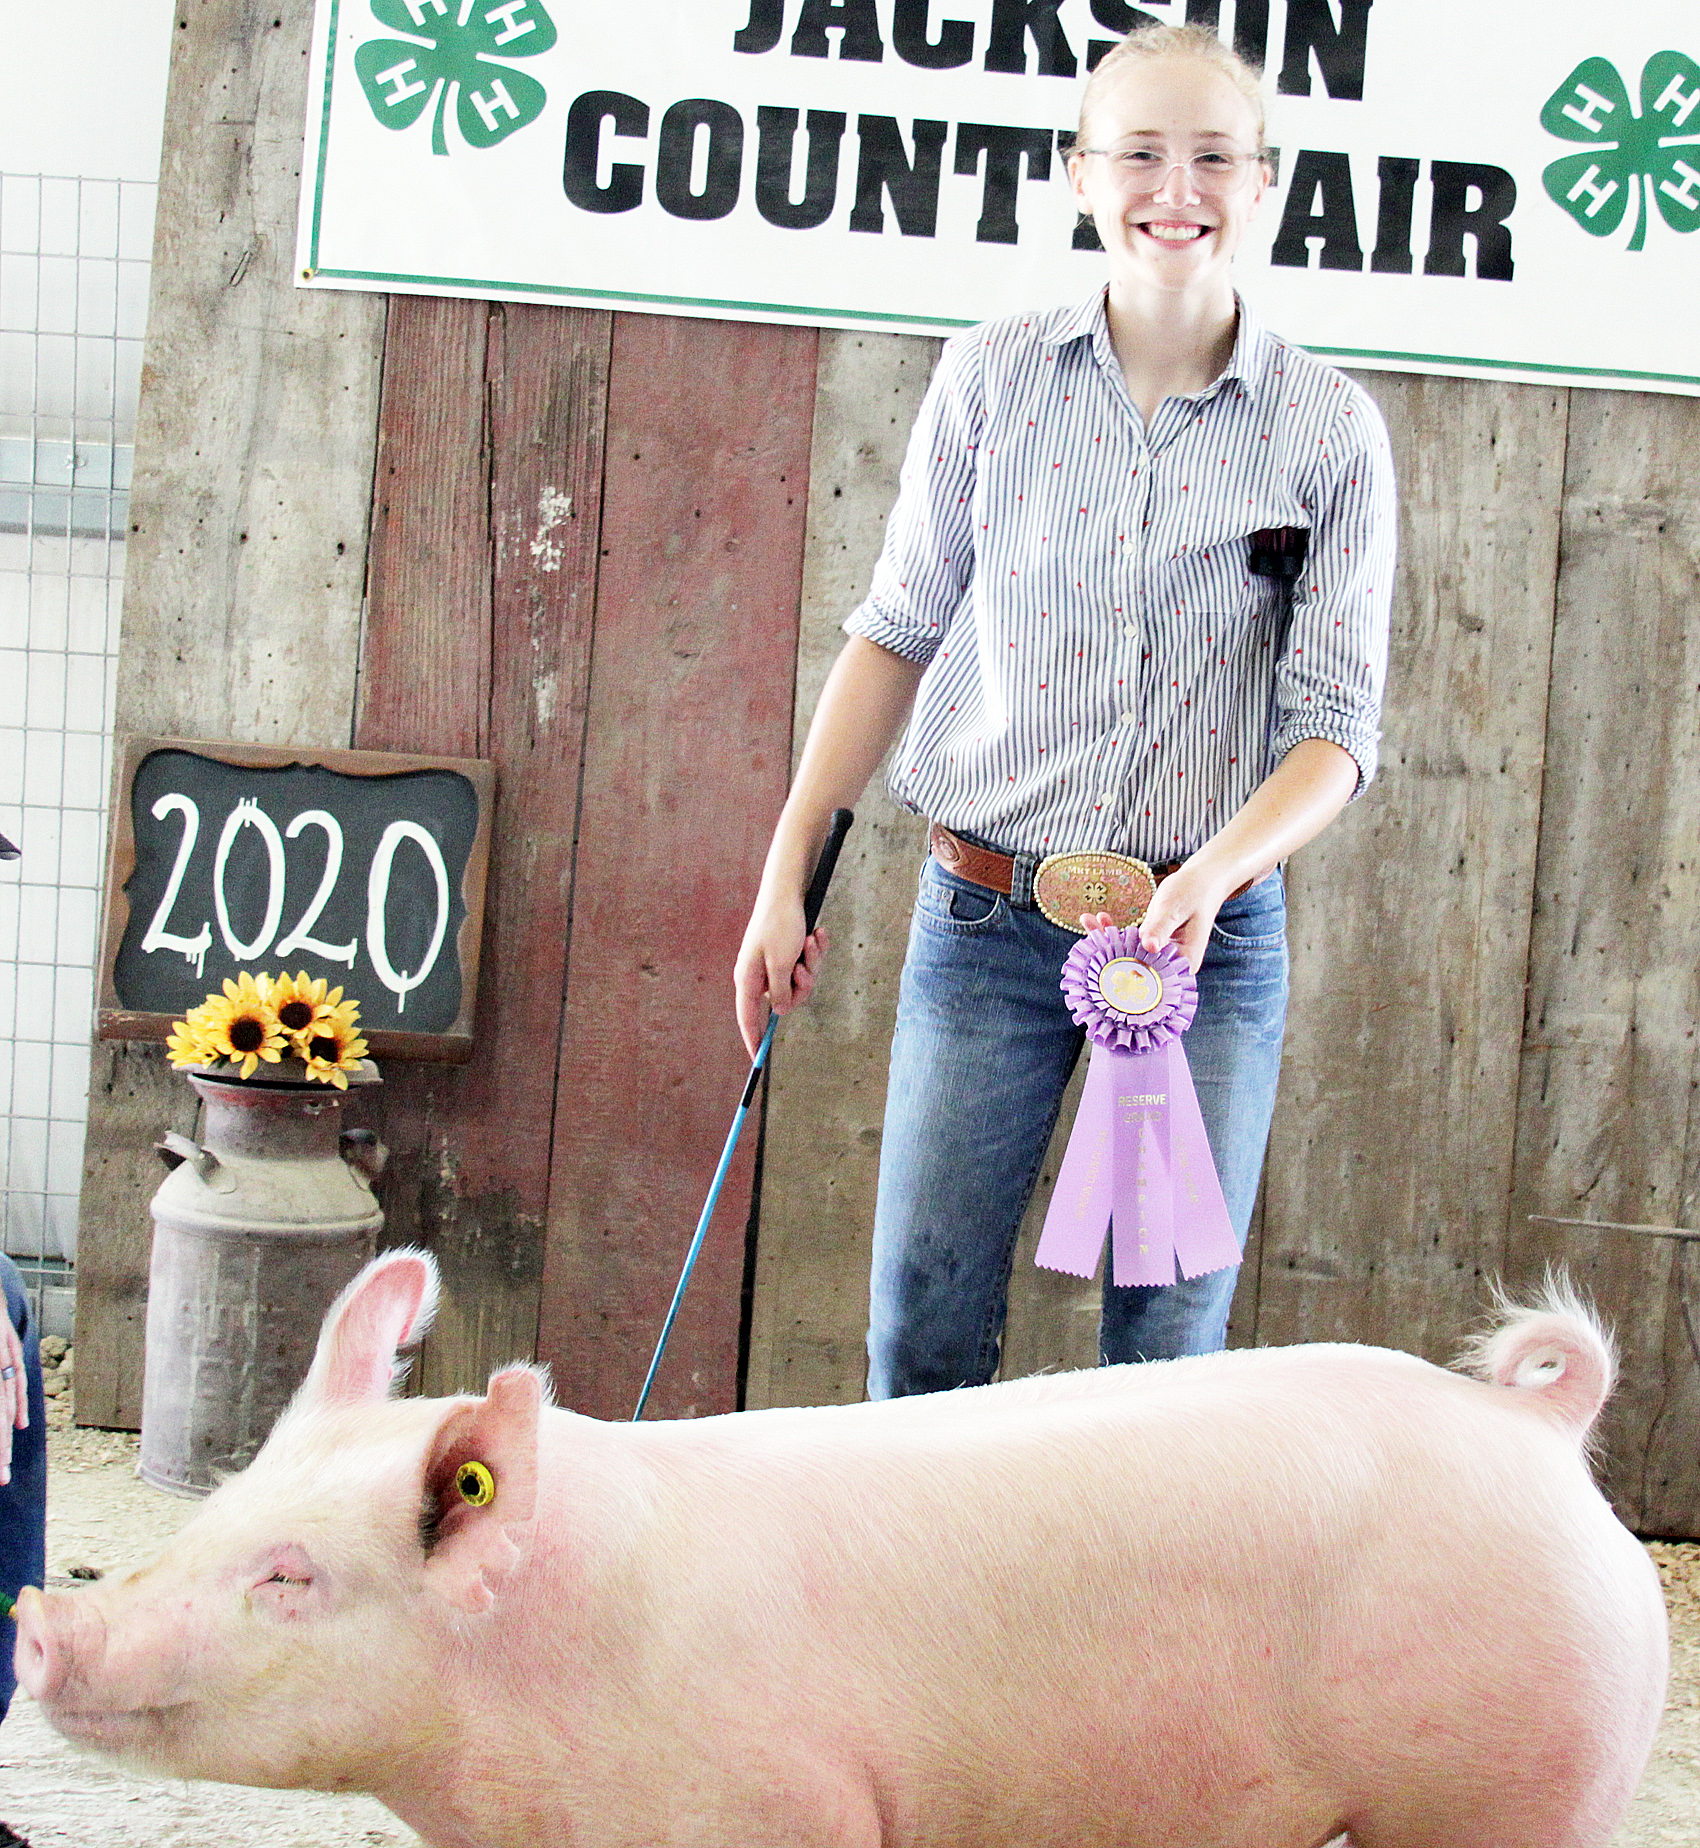 Lora Larison of the Pleasant Valley Rustlers 4-H Club was named Reserve Champion intermediate hog showman at the 2020 Jackson County Fair.